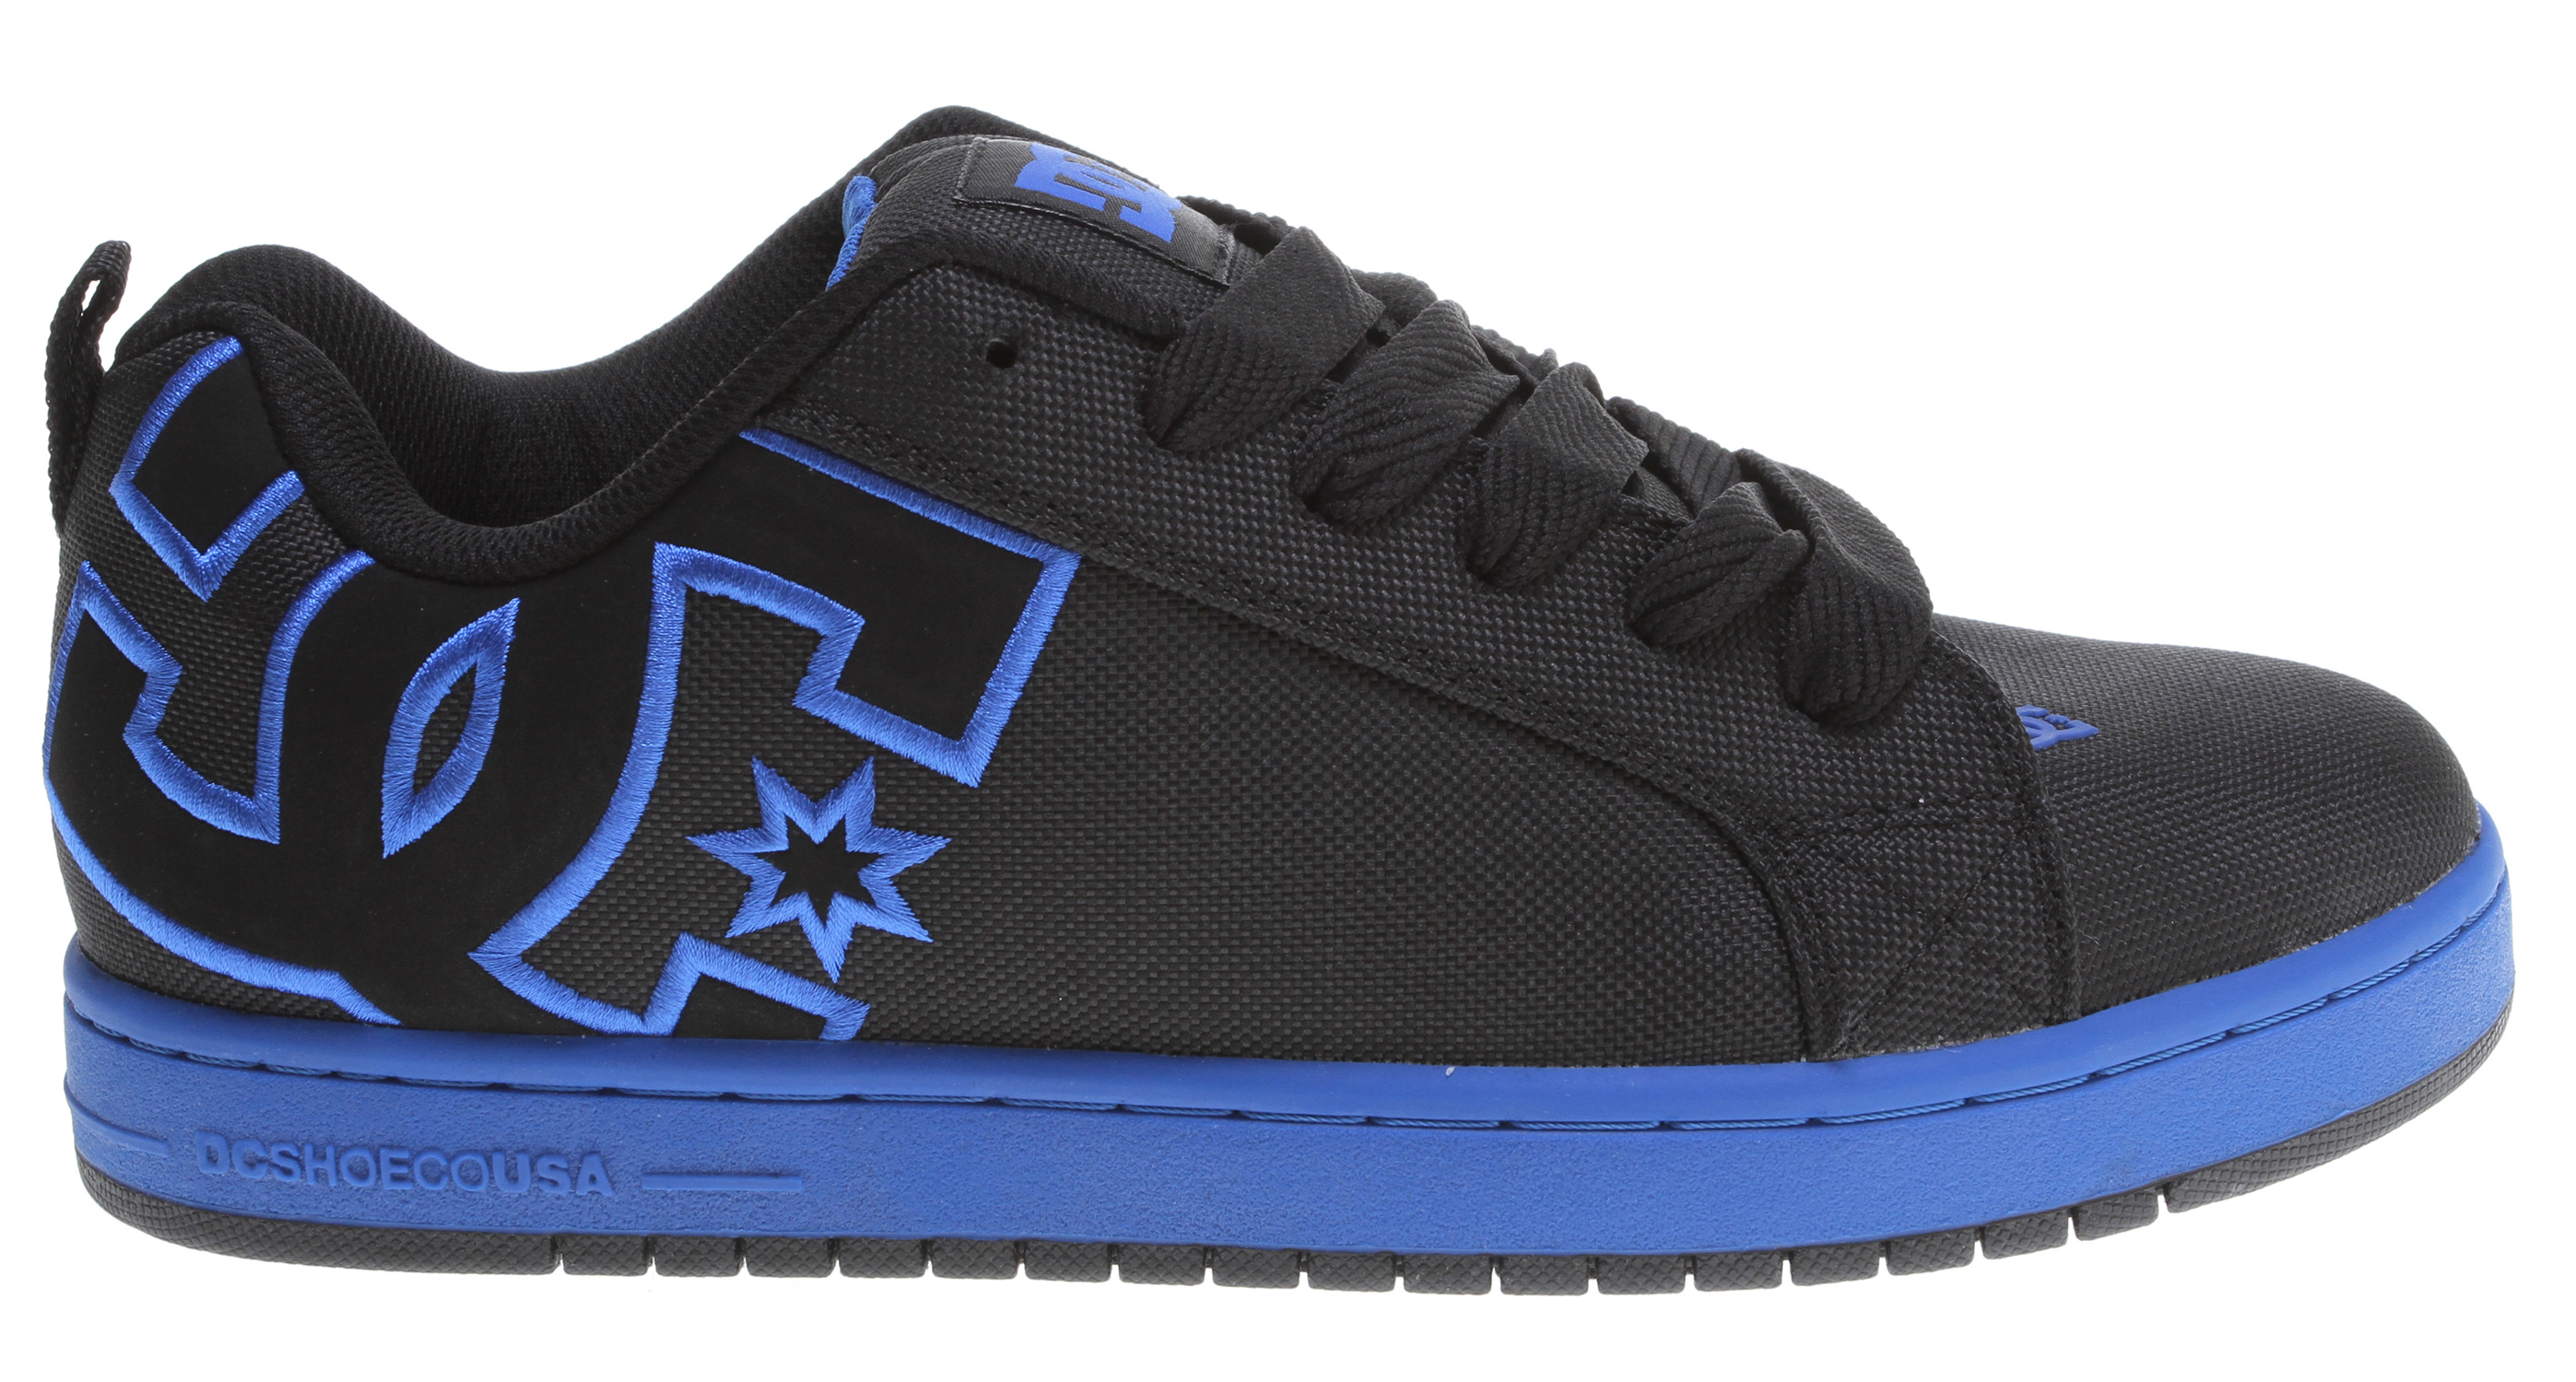 "Skateboard Key Features of the DC Court Graffik Tx Shoes: Large Heel Logo Textile Upper Foam Padded Tongue and Collar for Comfort and Support Vent Holes for Breathability Lightweight Mesh Tongue DC's Trademarked ""Pill Pattern"" Tread. - $60.00"